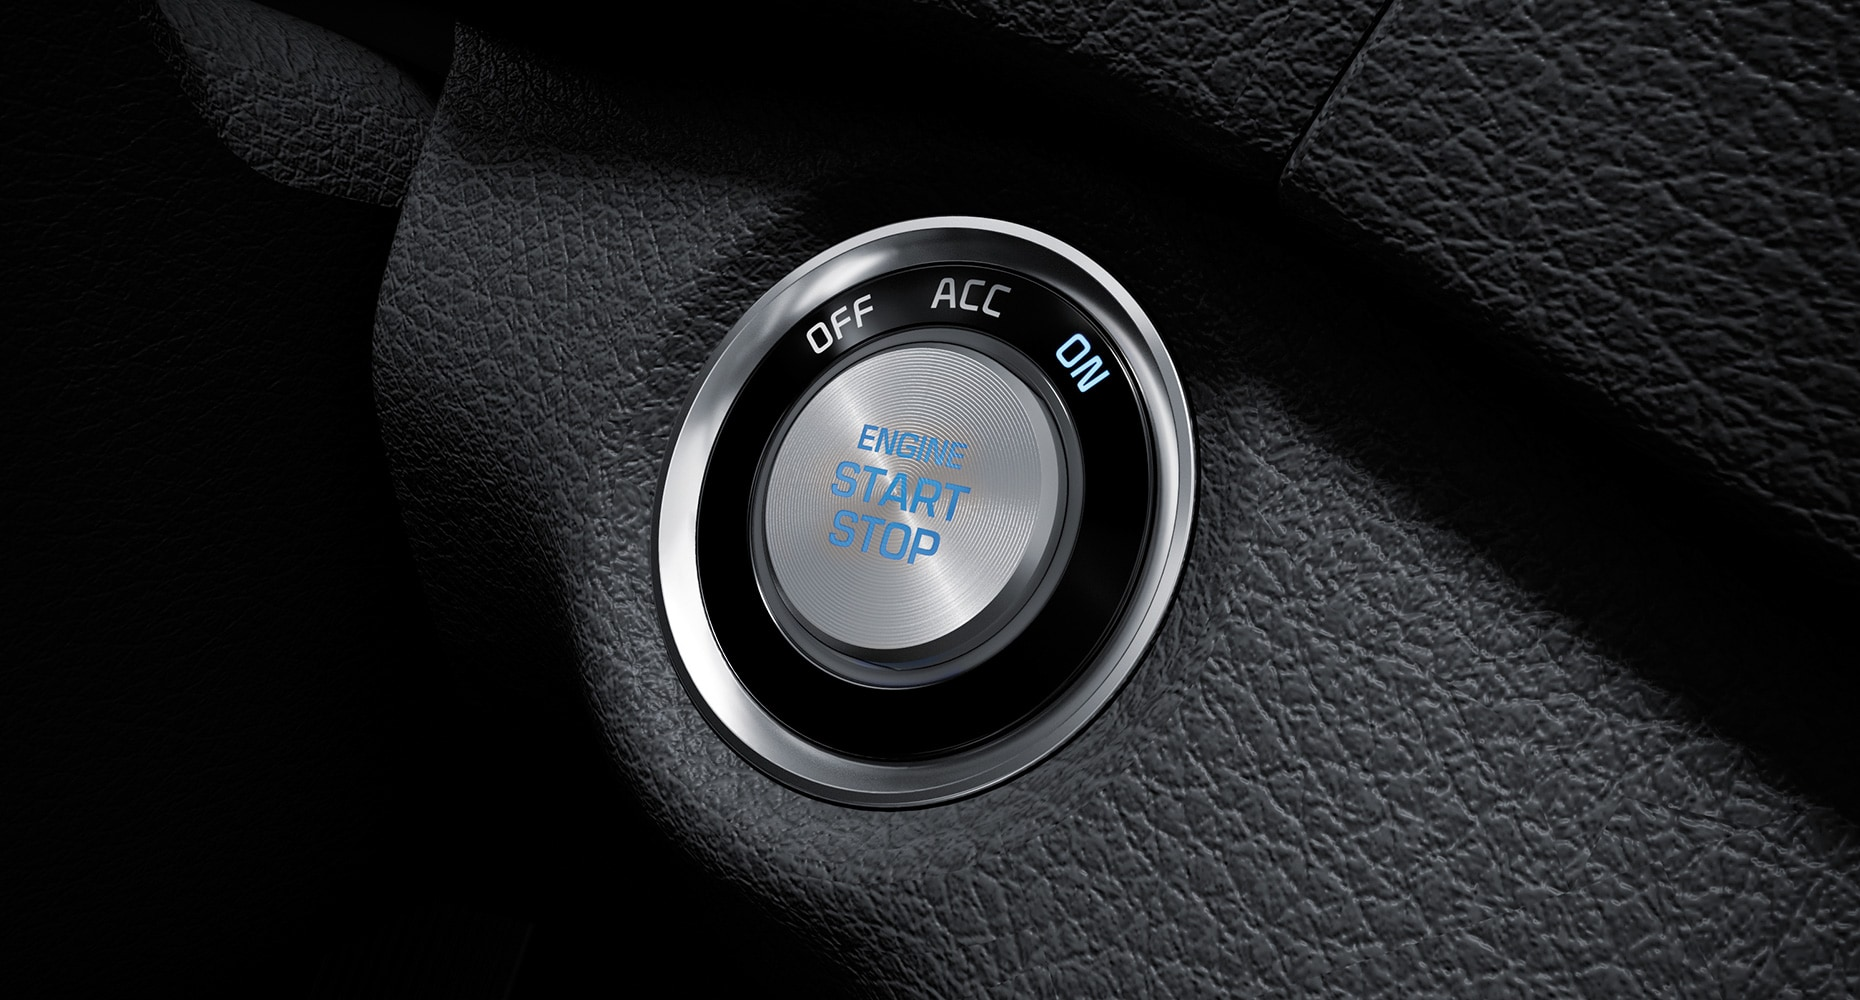 Proximity keyless entry with push-button ignition